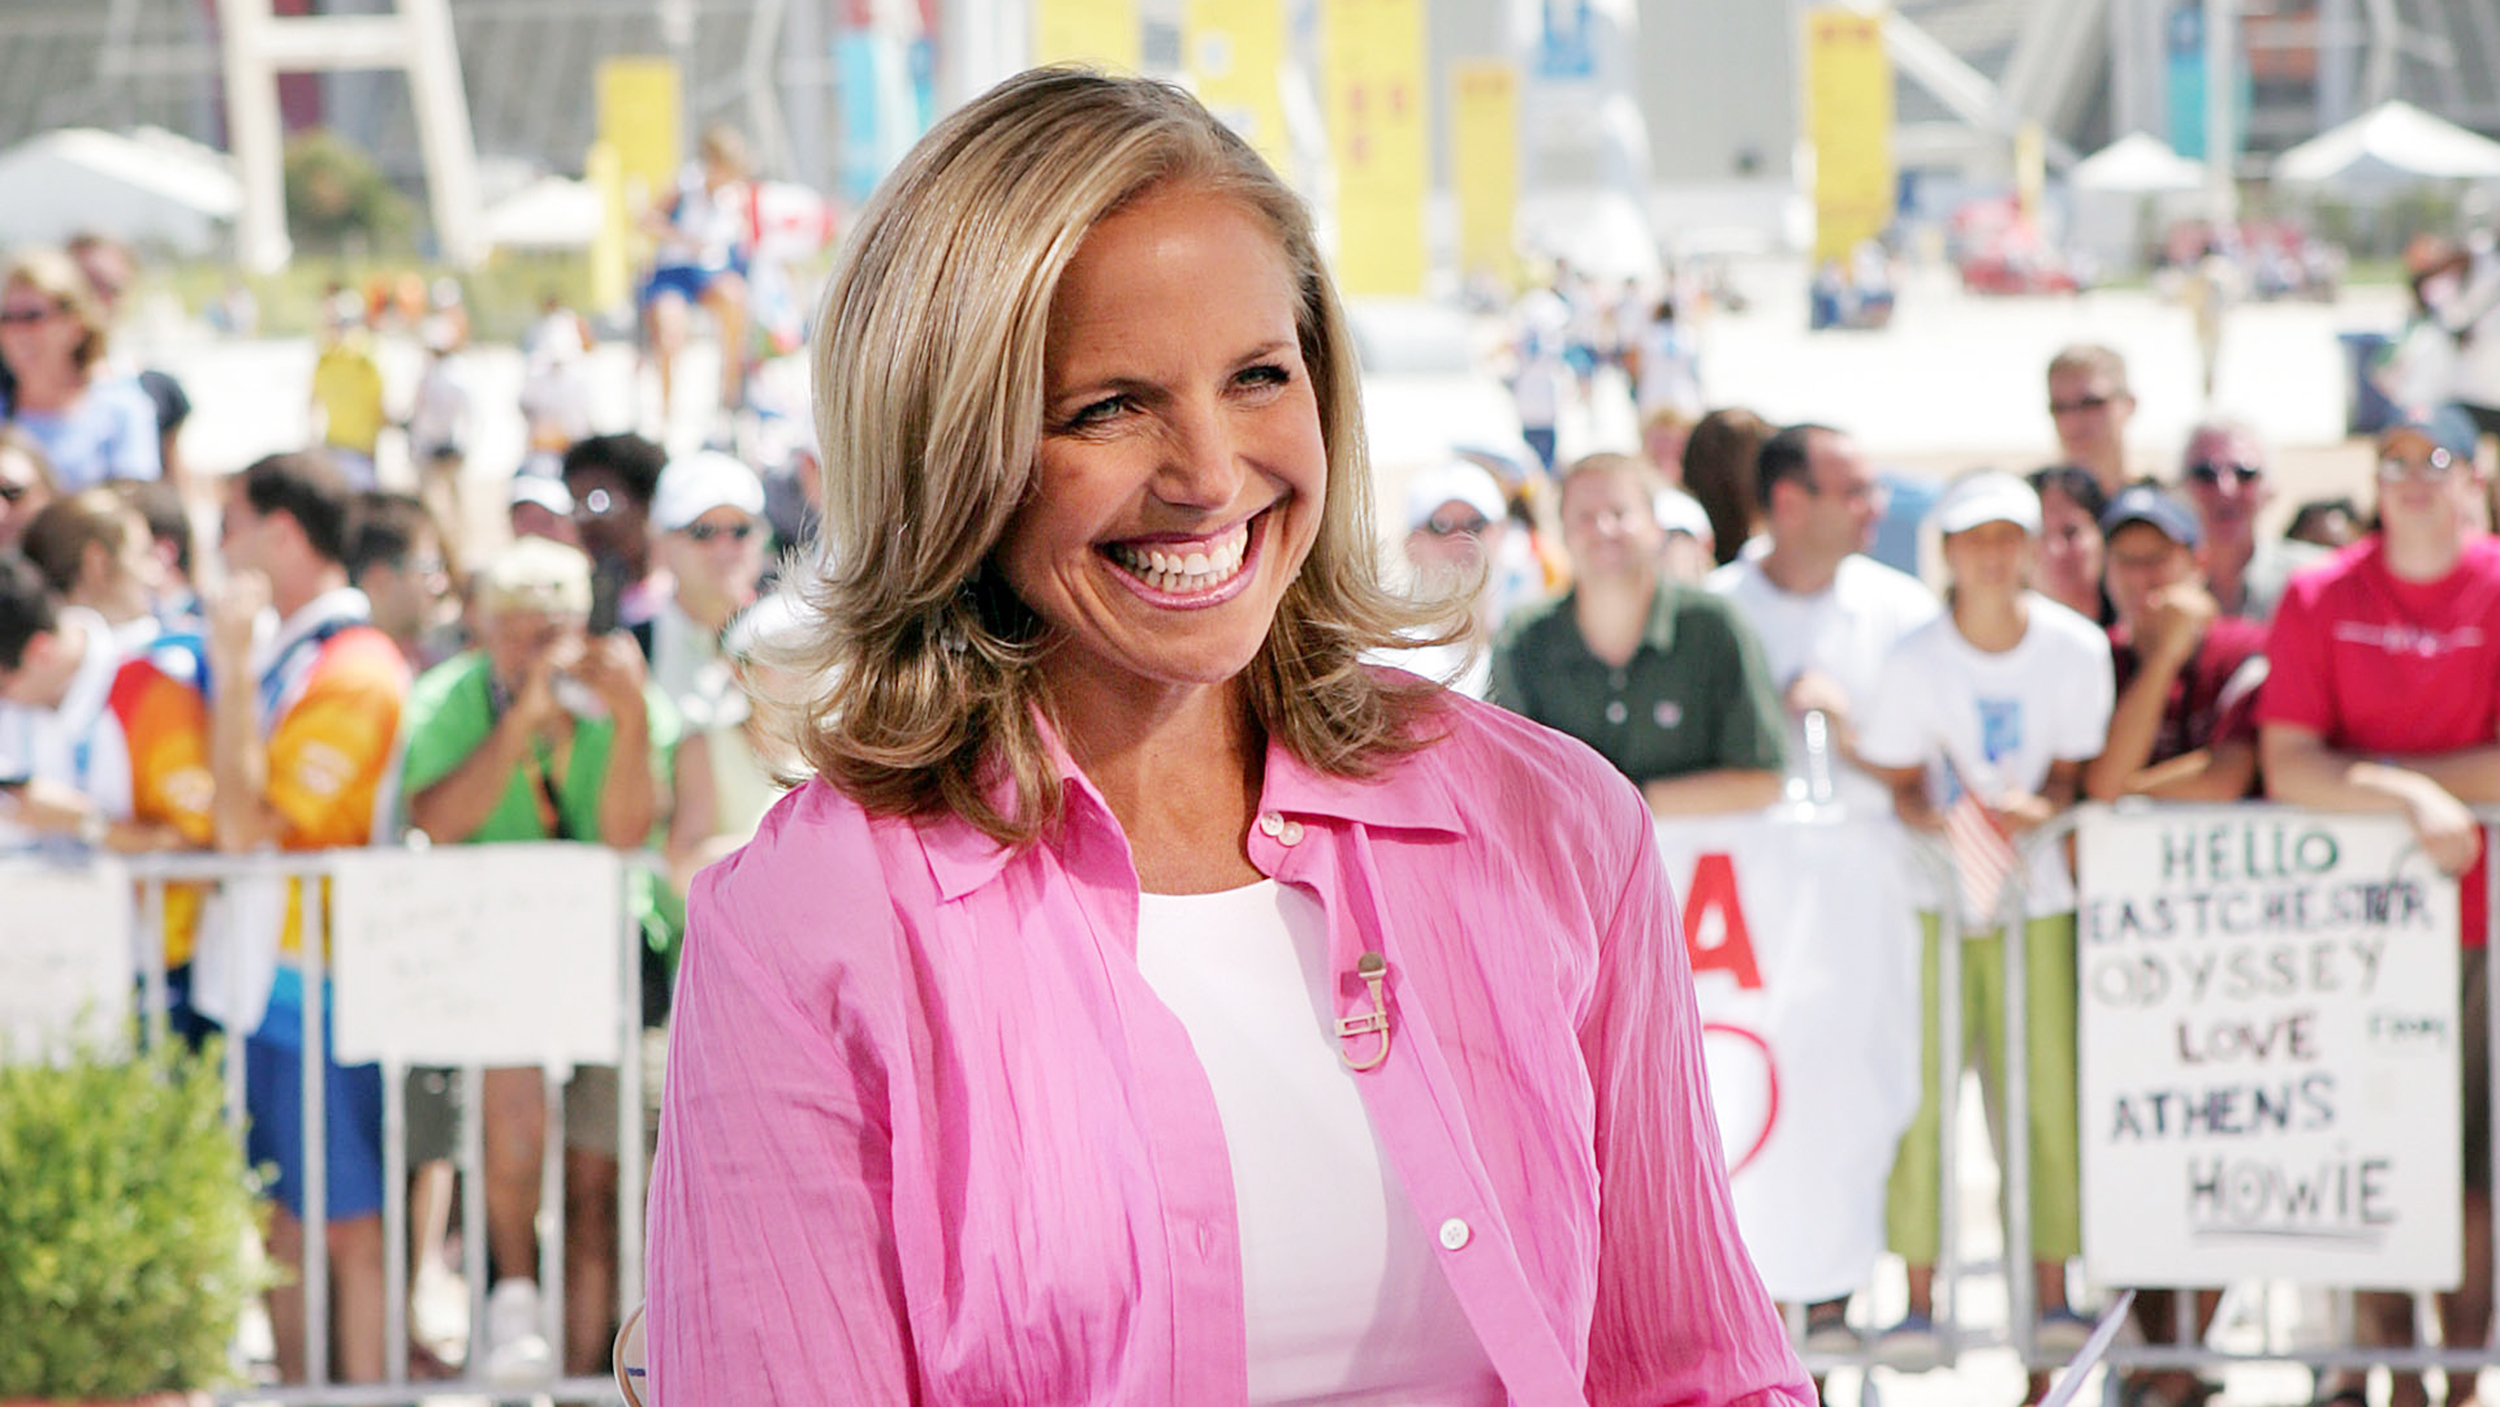 c2f65e3ab72cb Katie Couric will cohost the Winter Olympics opening ceremony on NBC